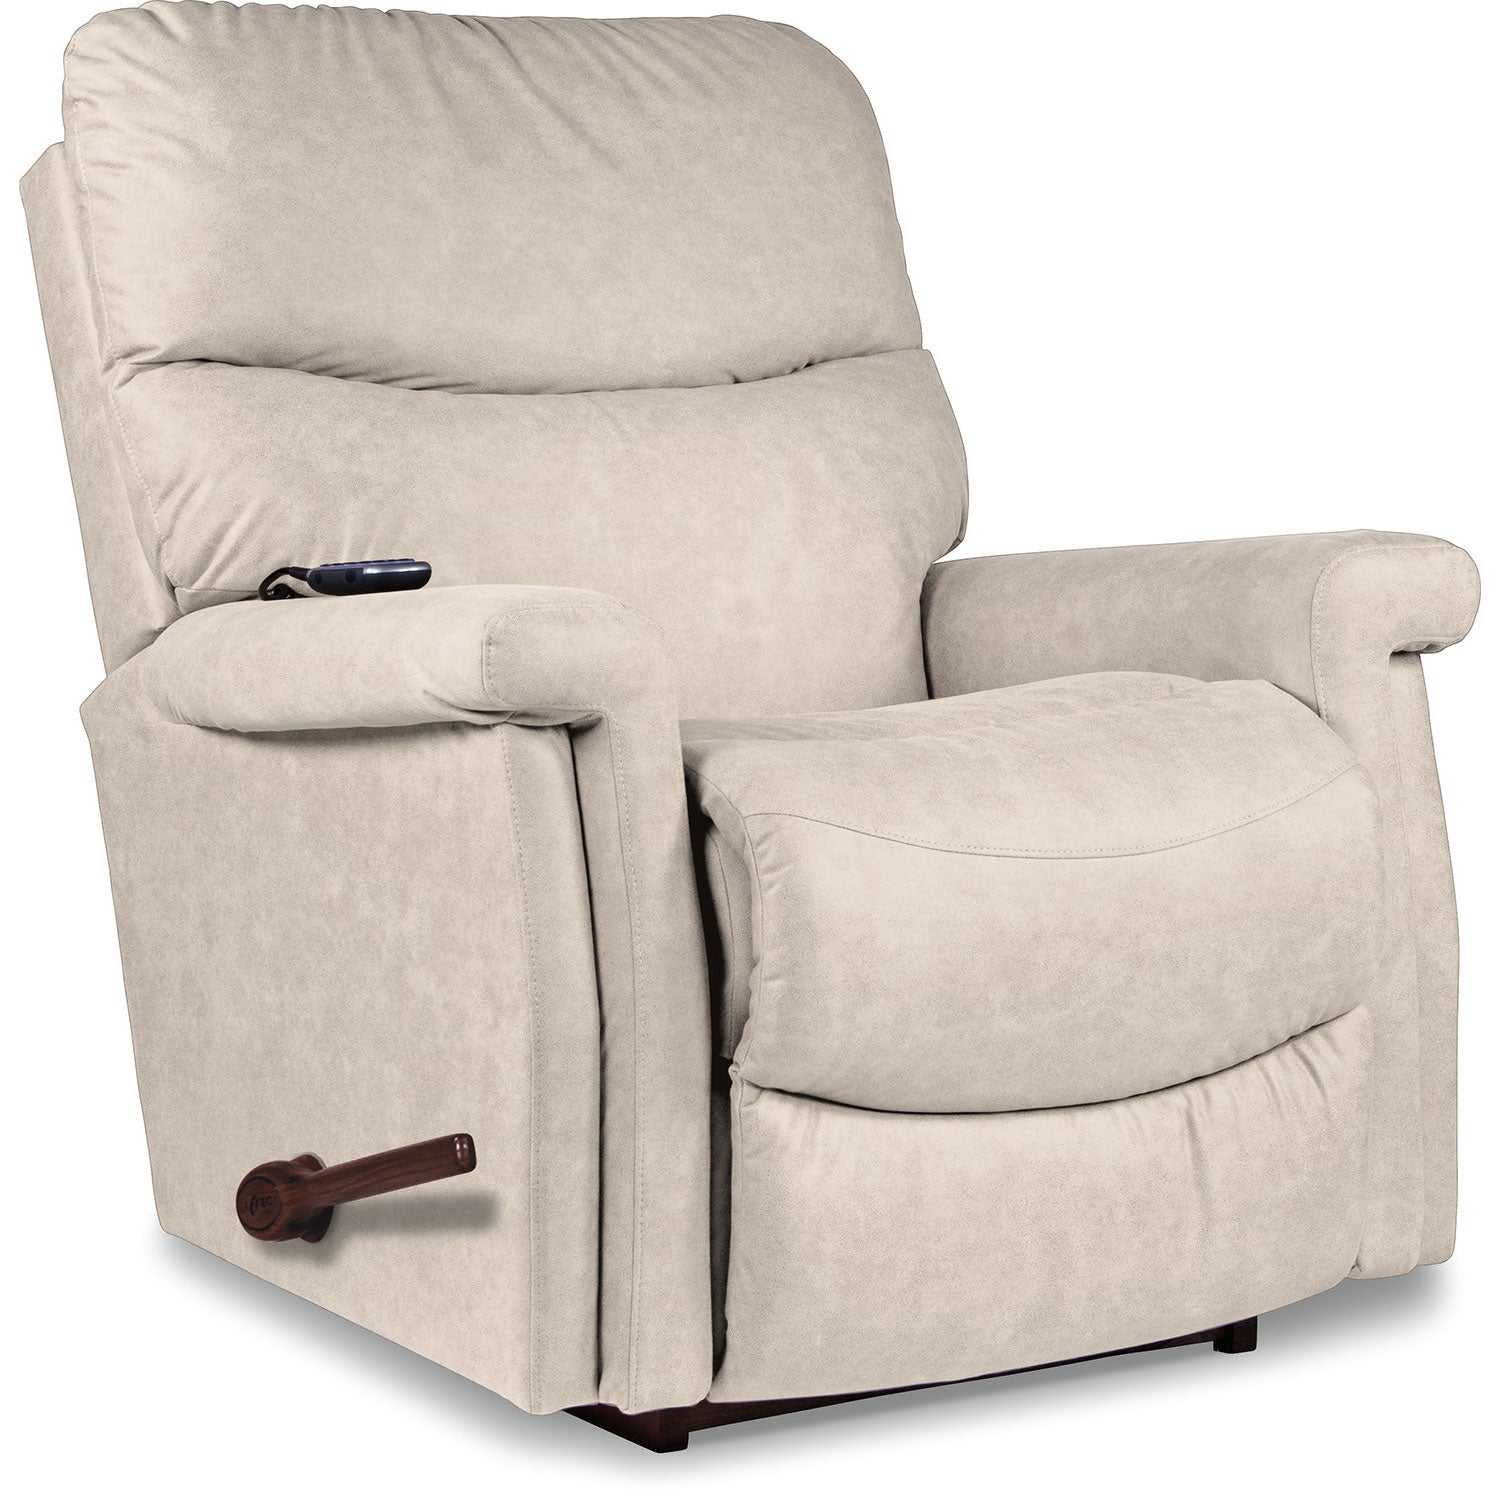 Baylor Reclina Rocker 174 Recliner W Two Motor Massage Amp Heat